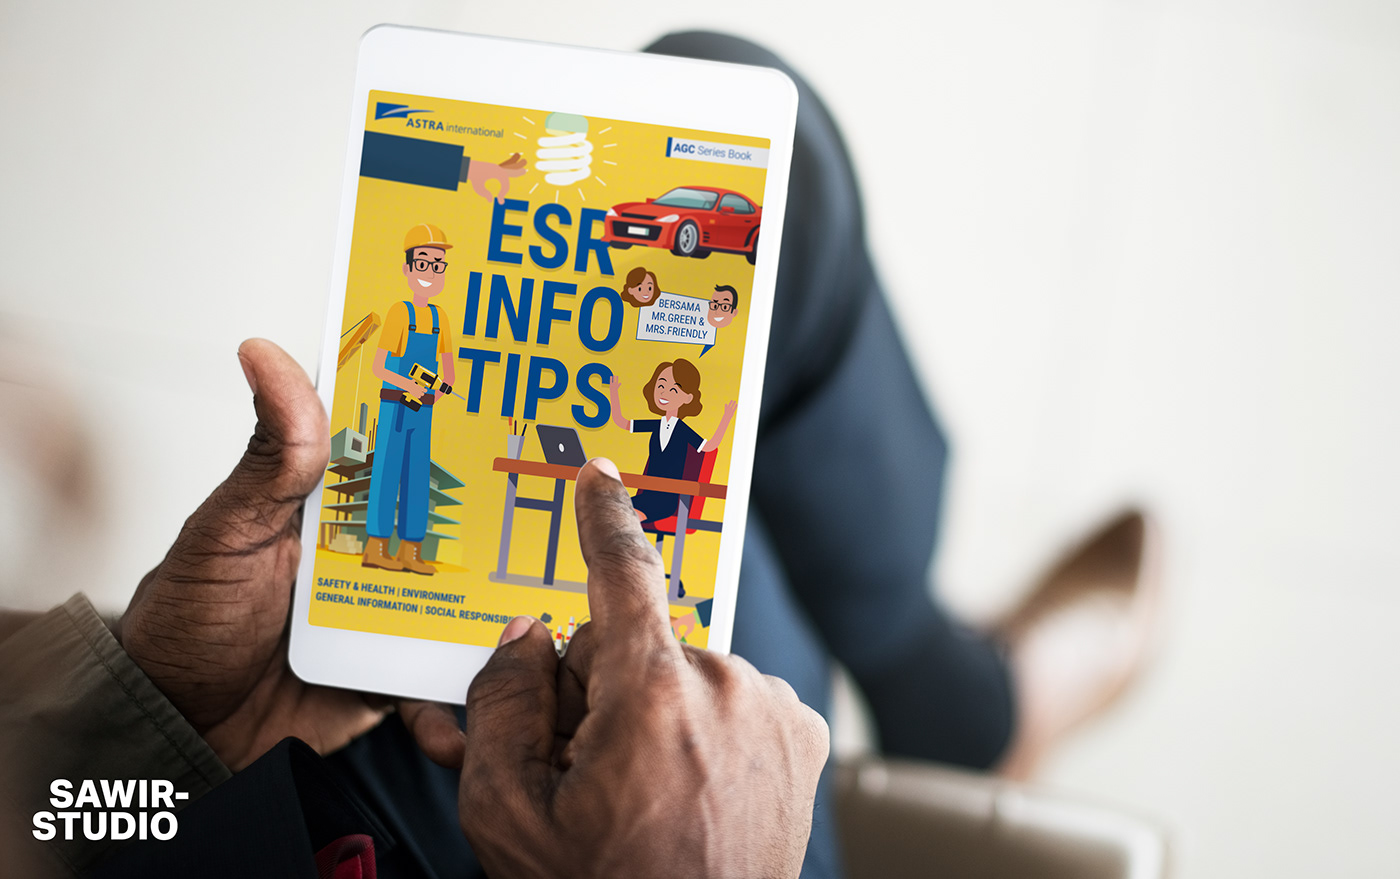 Astra International Internal's e-book titled 'ESR Tips and Info'